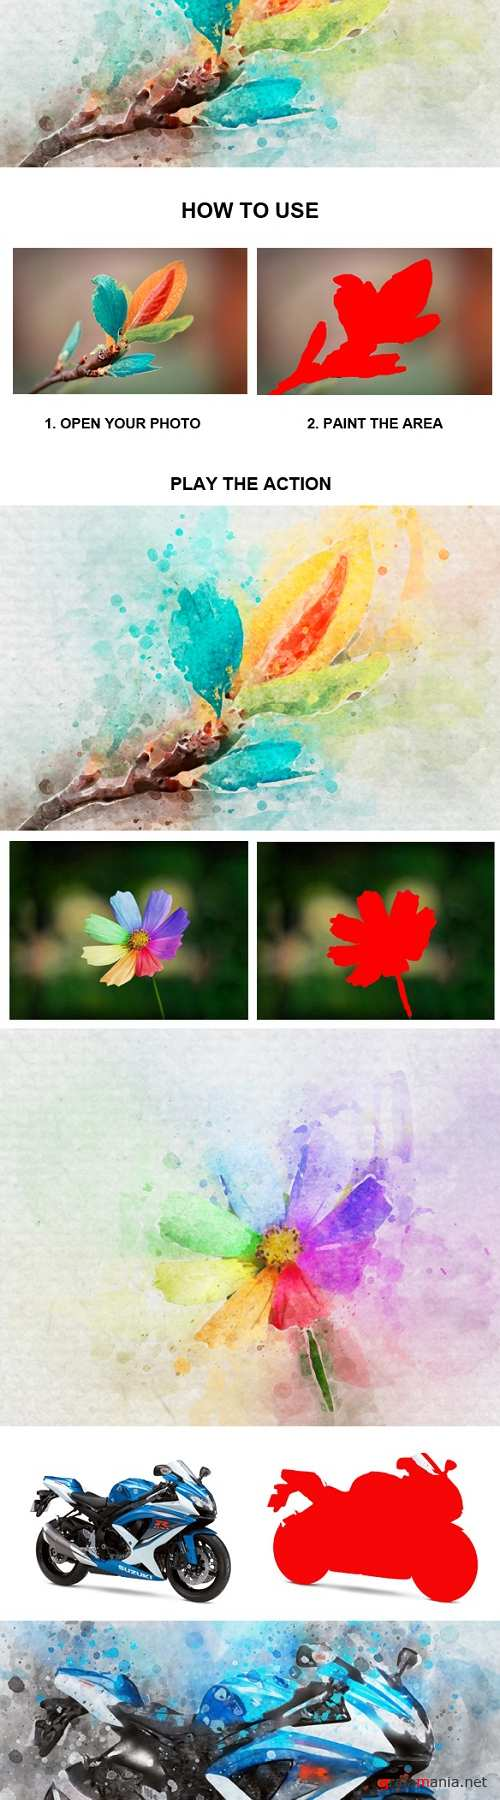 Water Color Photoshop Action 21211185